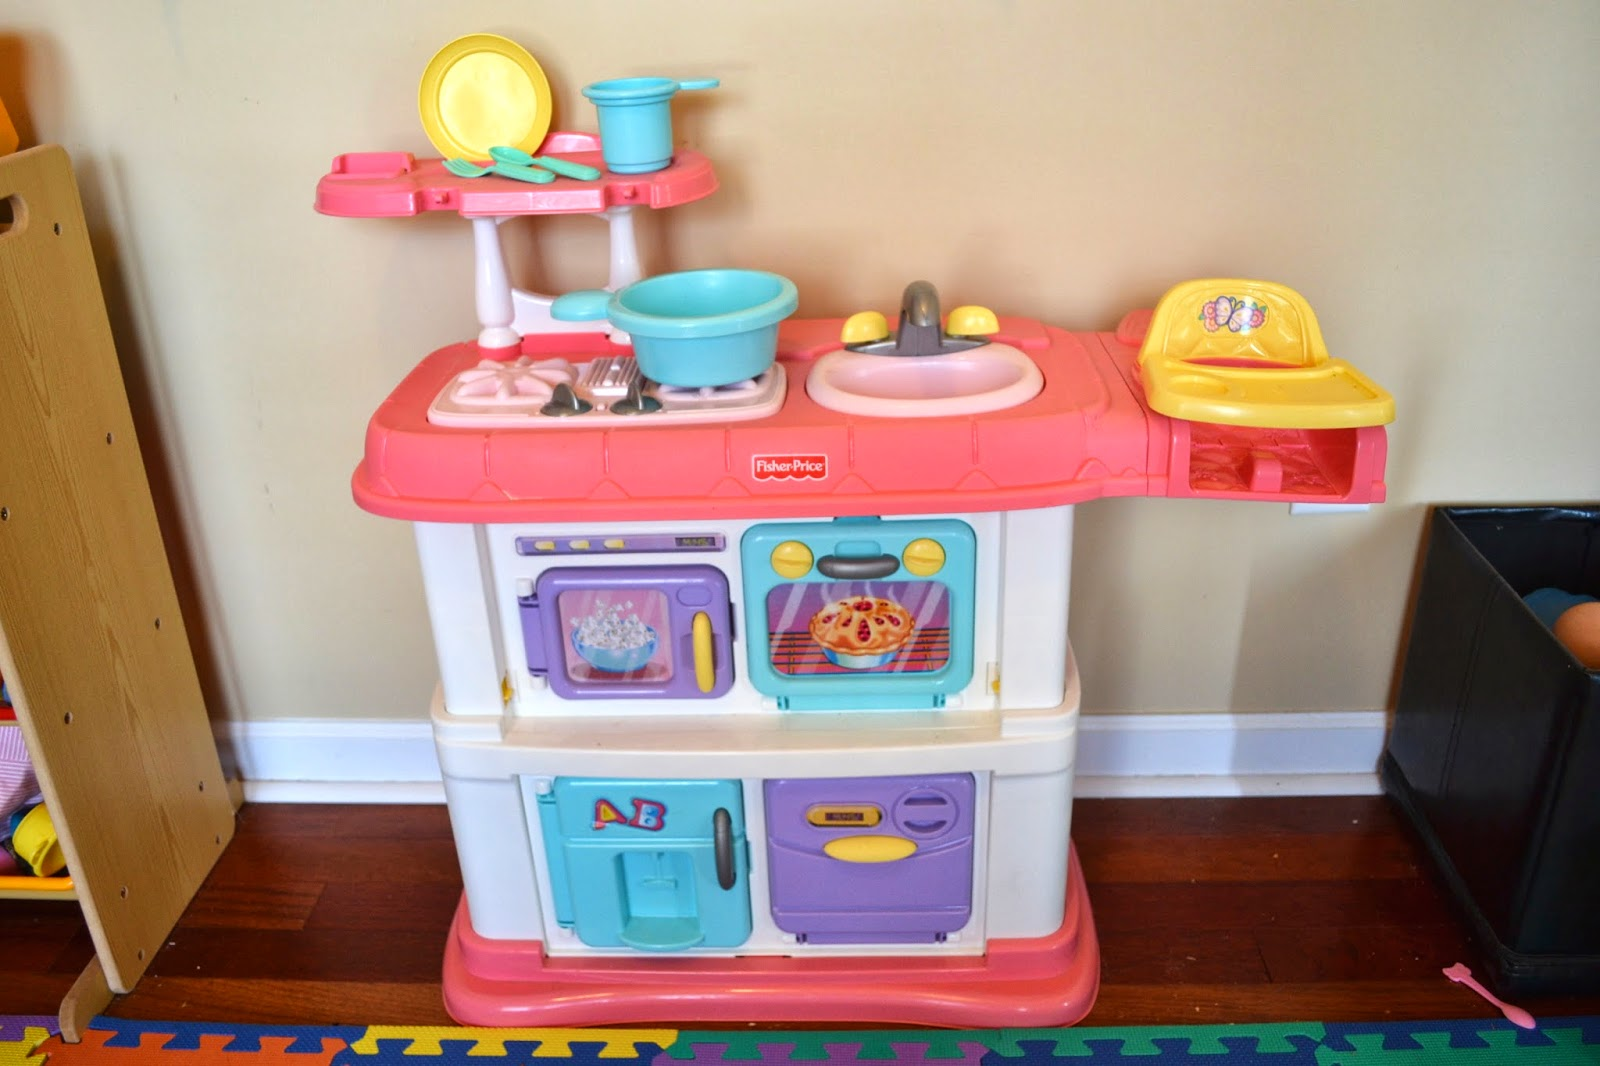 Many Of The Accessories Have Found Their Way Out Of Our House, But The  Kitchen Itself Is In Excellent Condition. Asking $25